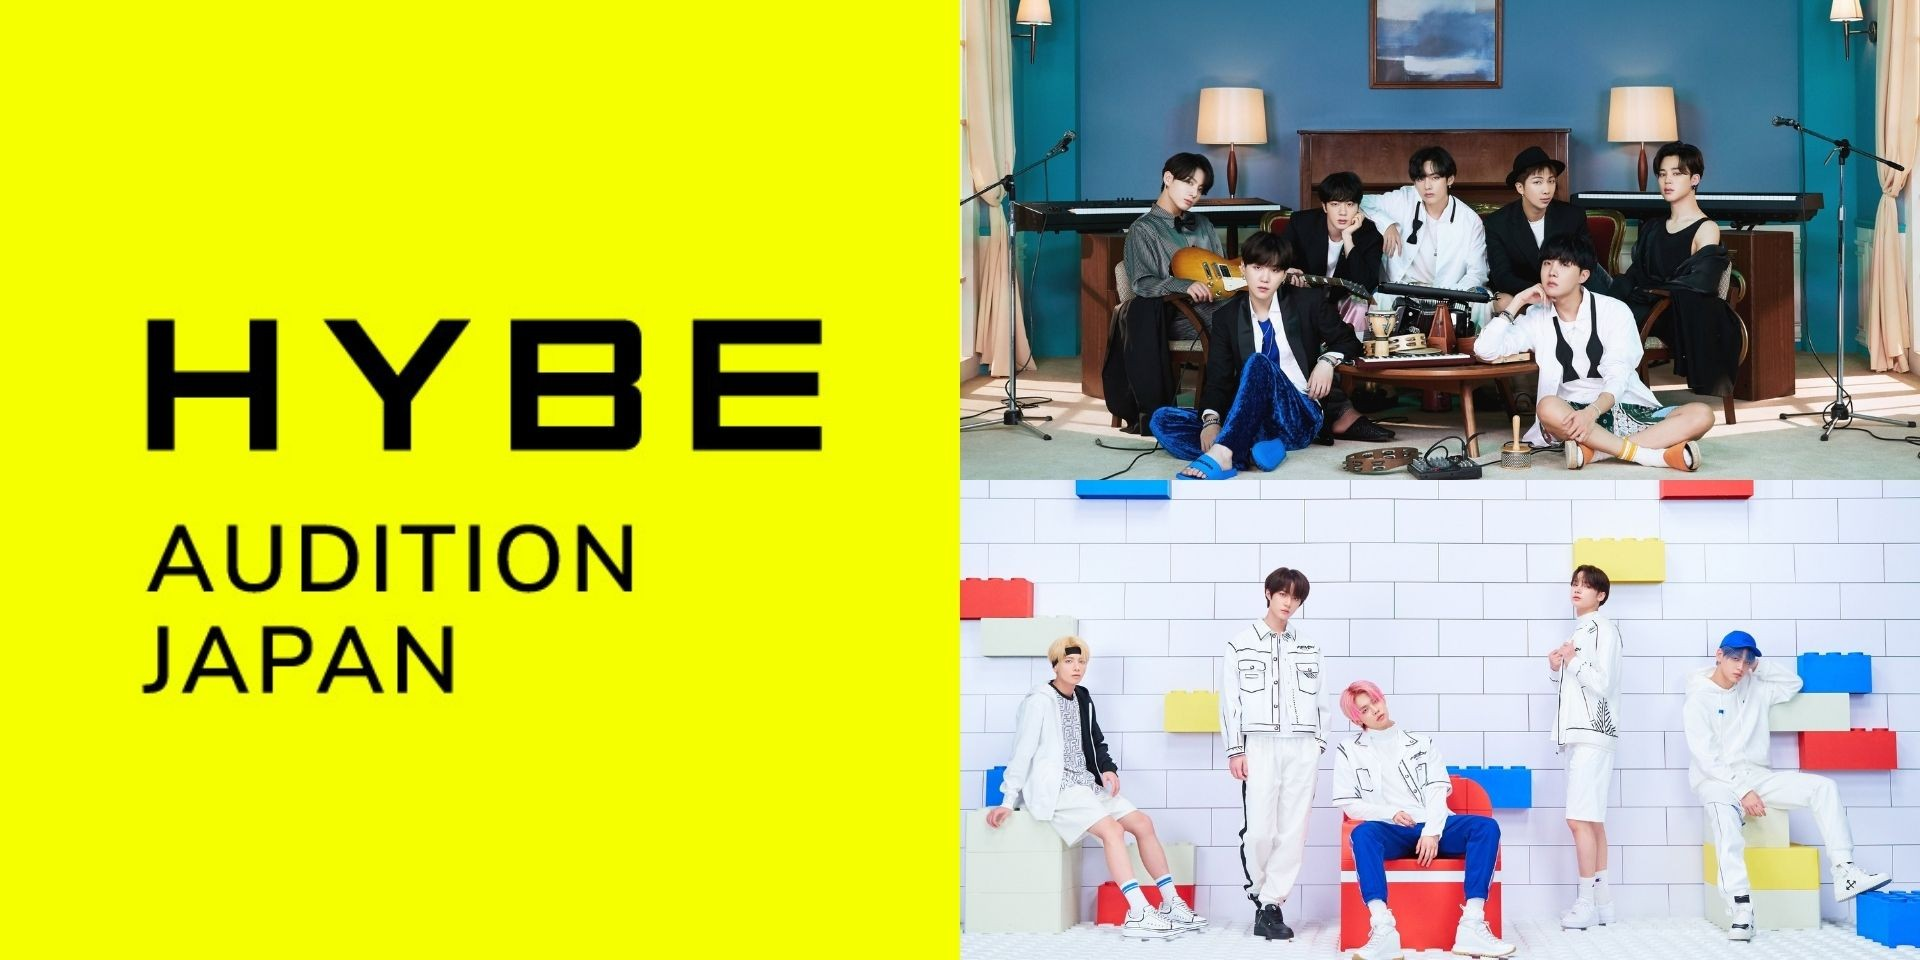 HYBE launches auditions in Japan, here's how to apply from home